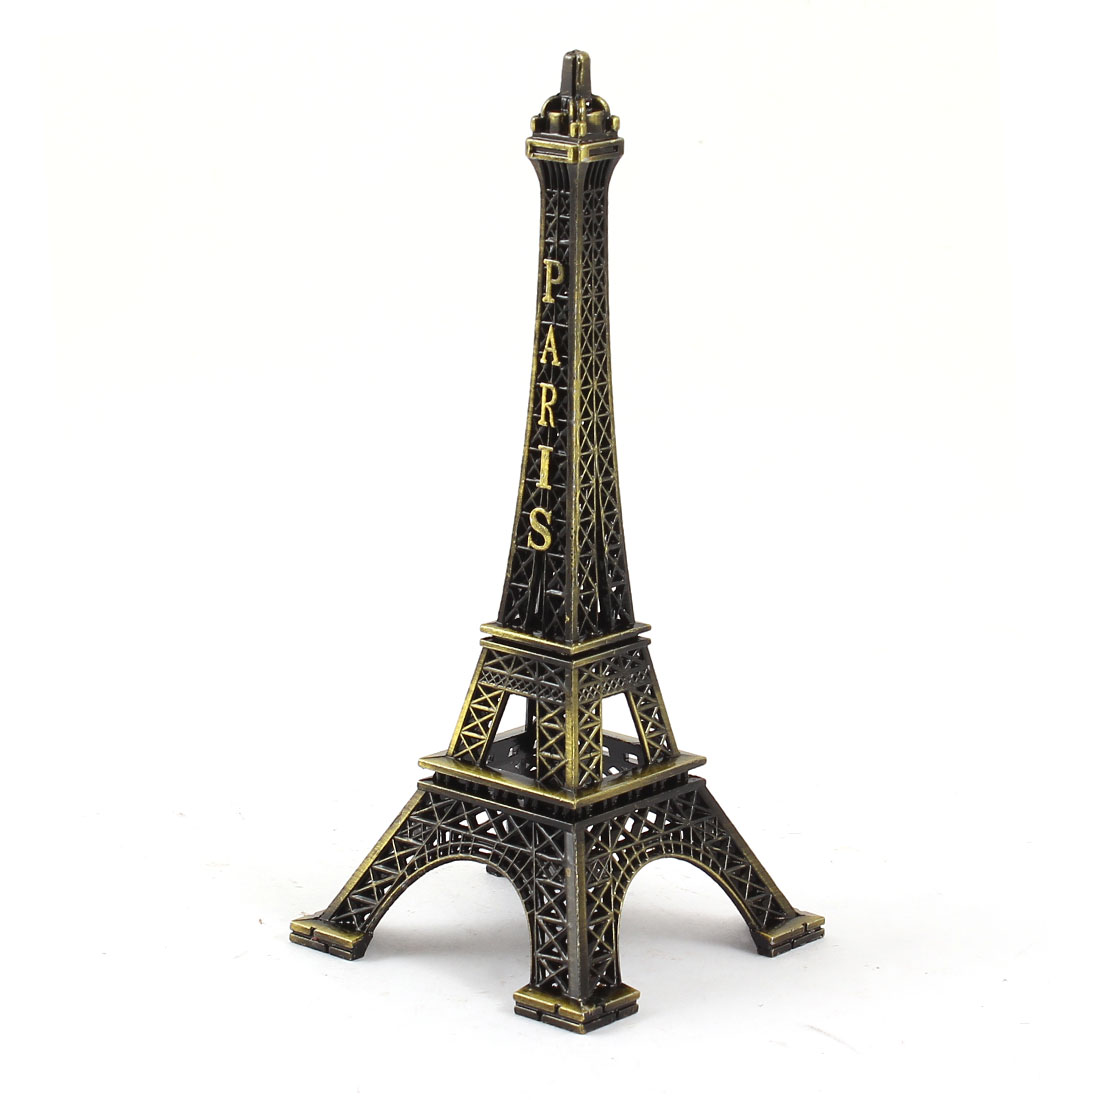 "Bronze Tone Metal France Miniature Paris Eiffel Tower Statue Model Ornament 5.1"" High"